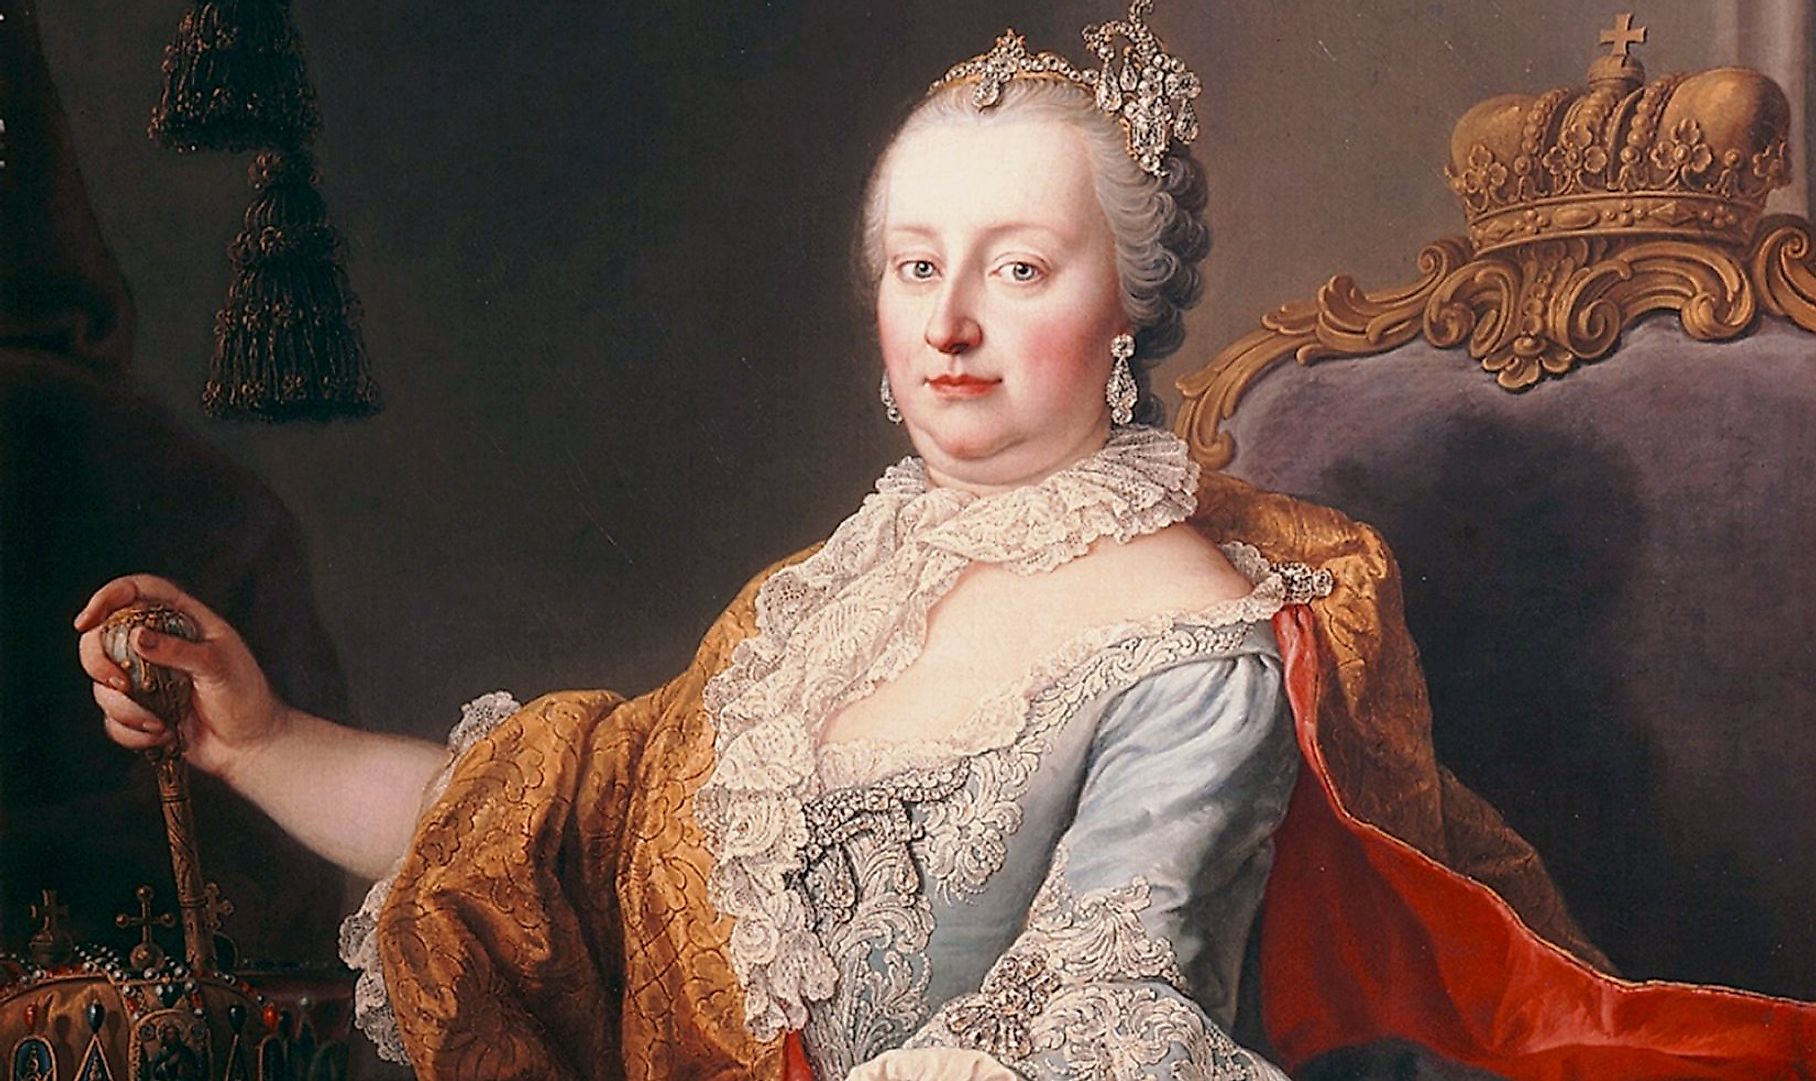 Portrait of Maria Theresa by Martin van Meytens, 1759.